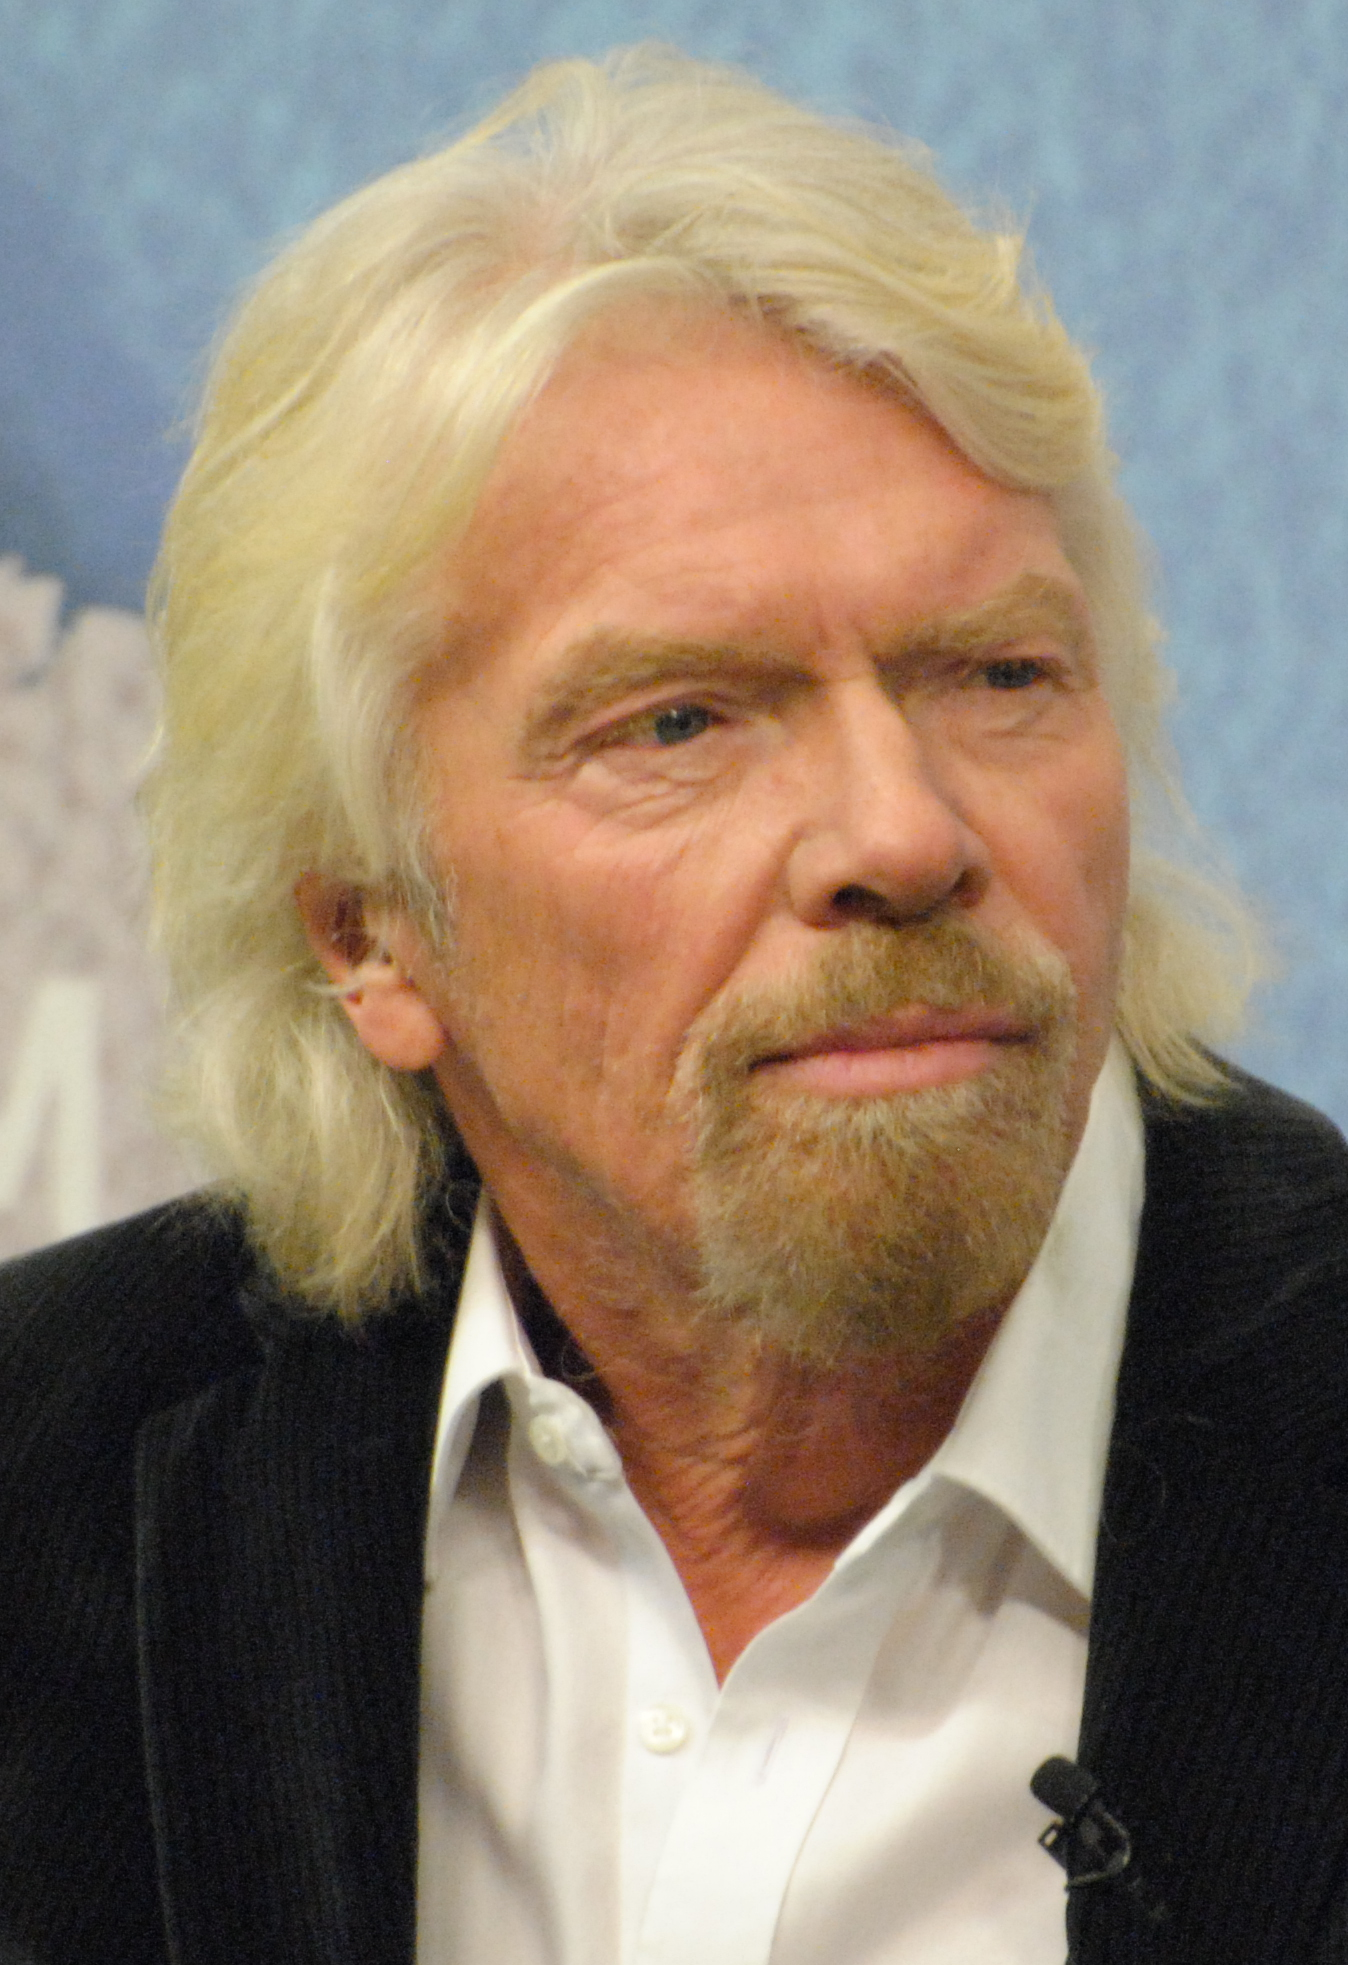 Richard Branson | Virgin Airlines